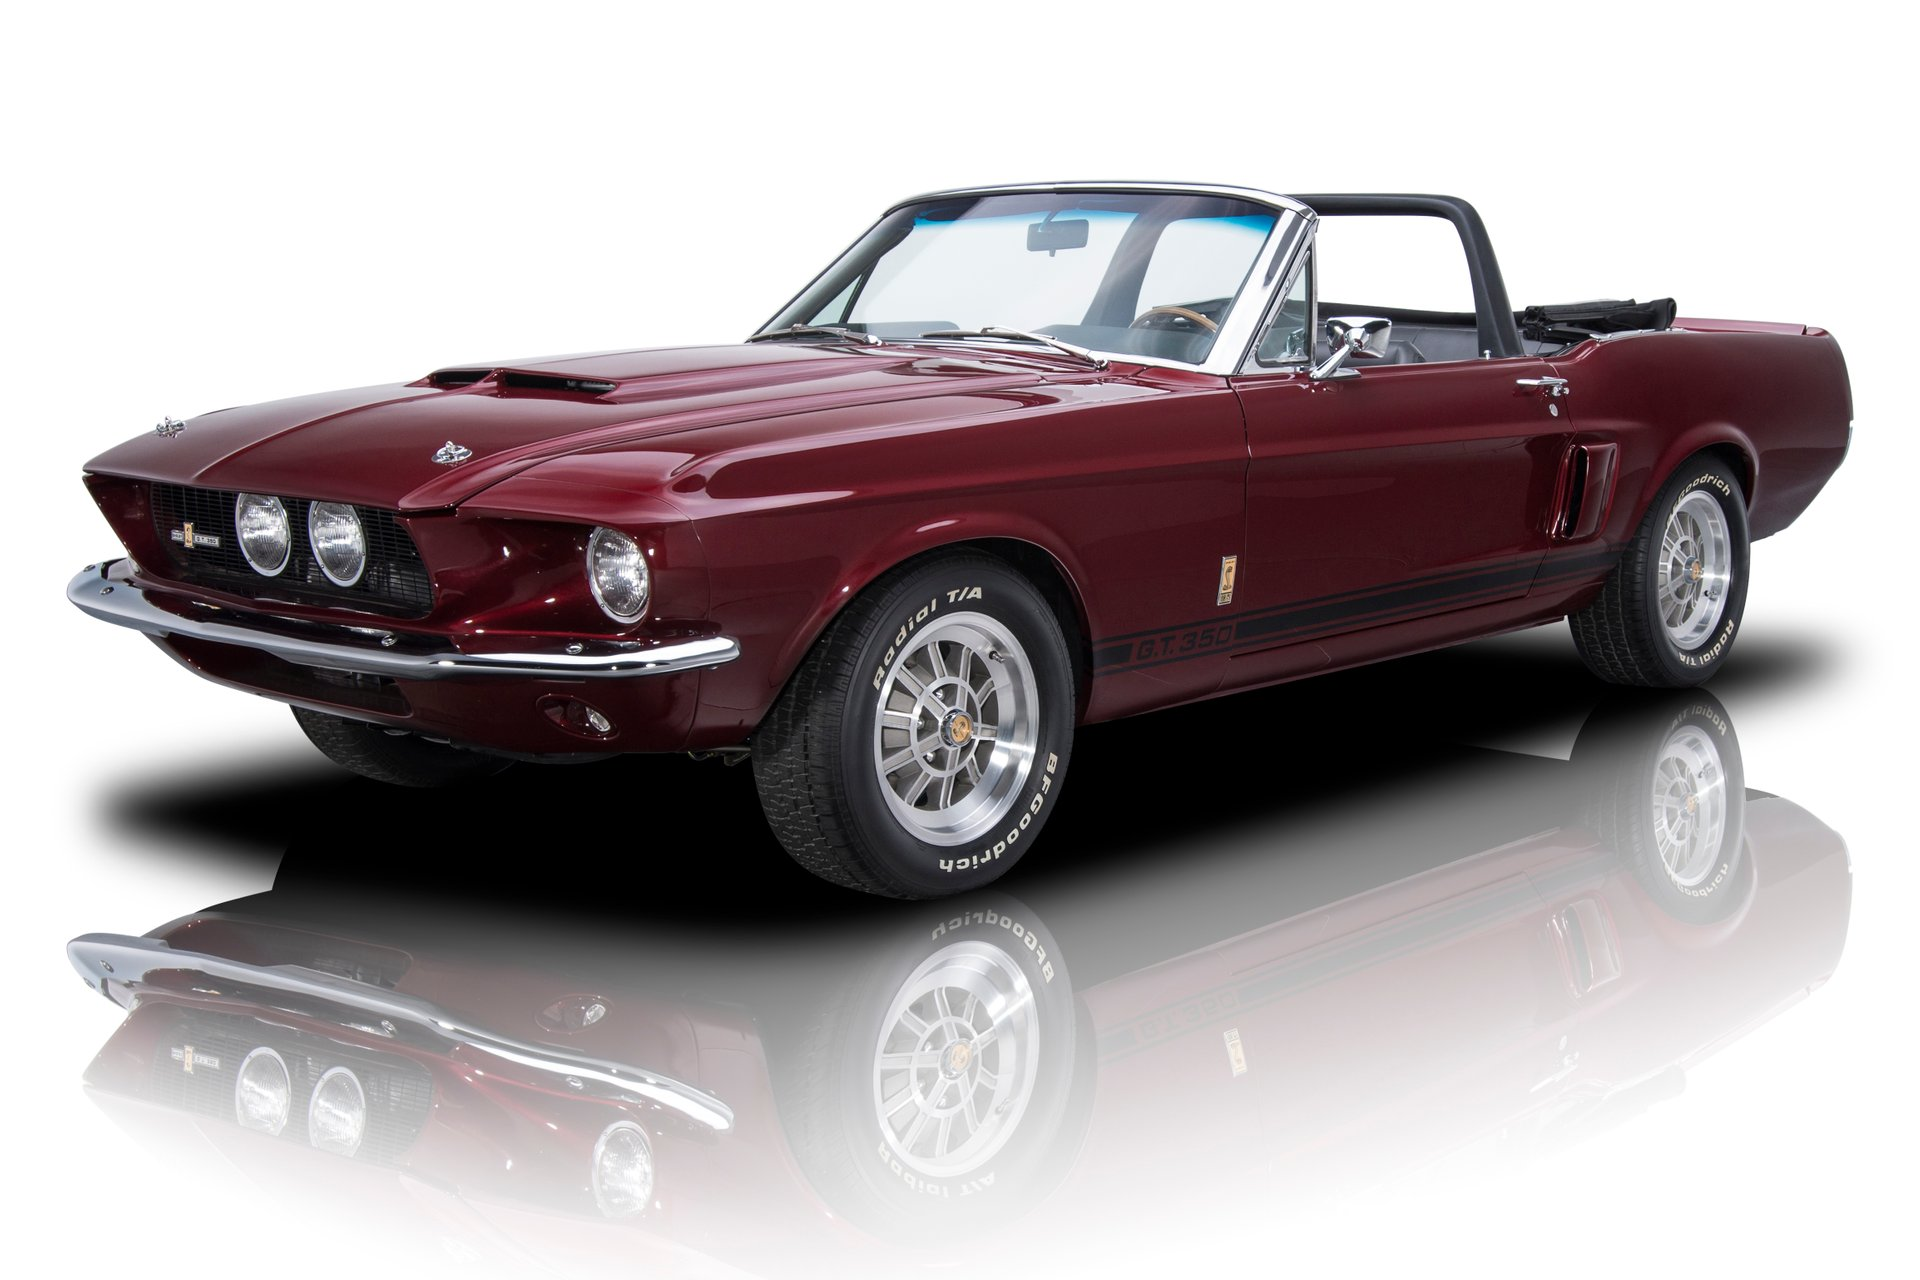 hight resolution of ground up built shelby gt350 conv tribute 331 stroker v8 5spd air conditioning